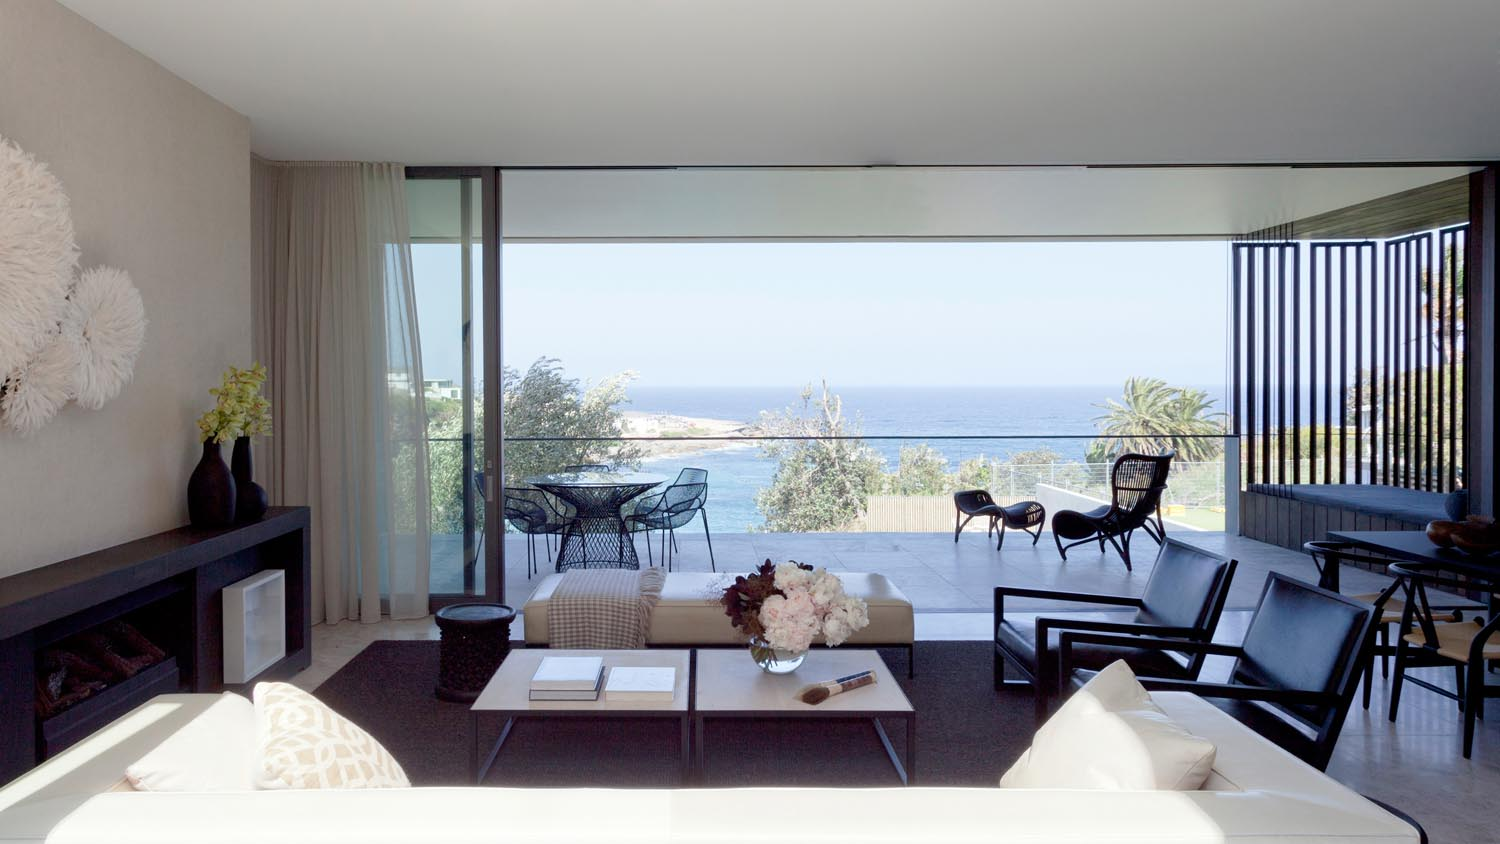 Gordon's Bay House - Local Living Room Ocean View - Madeleine Blanchfield Architects - Architecture Archive